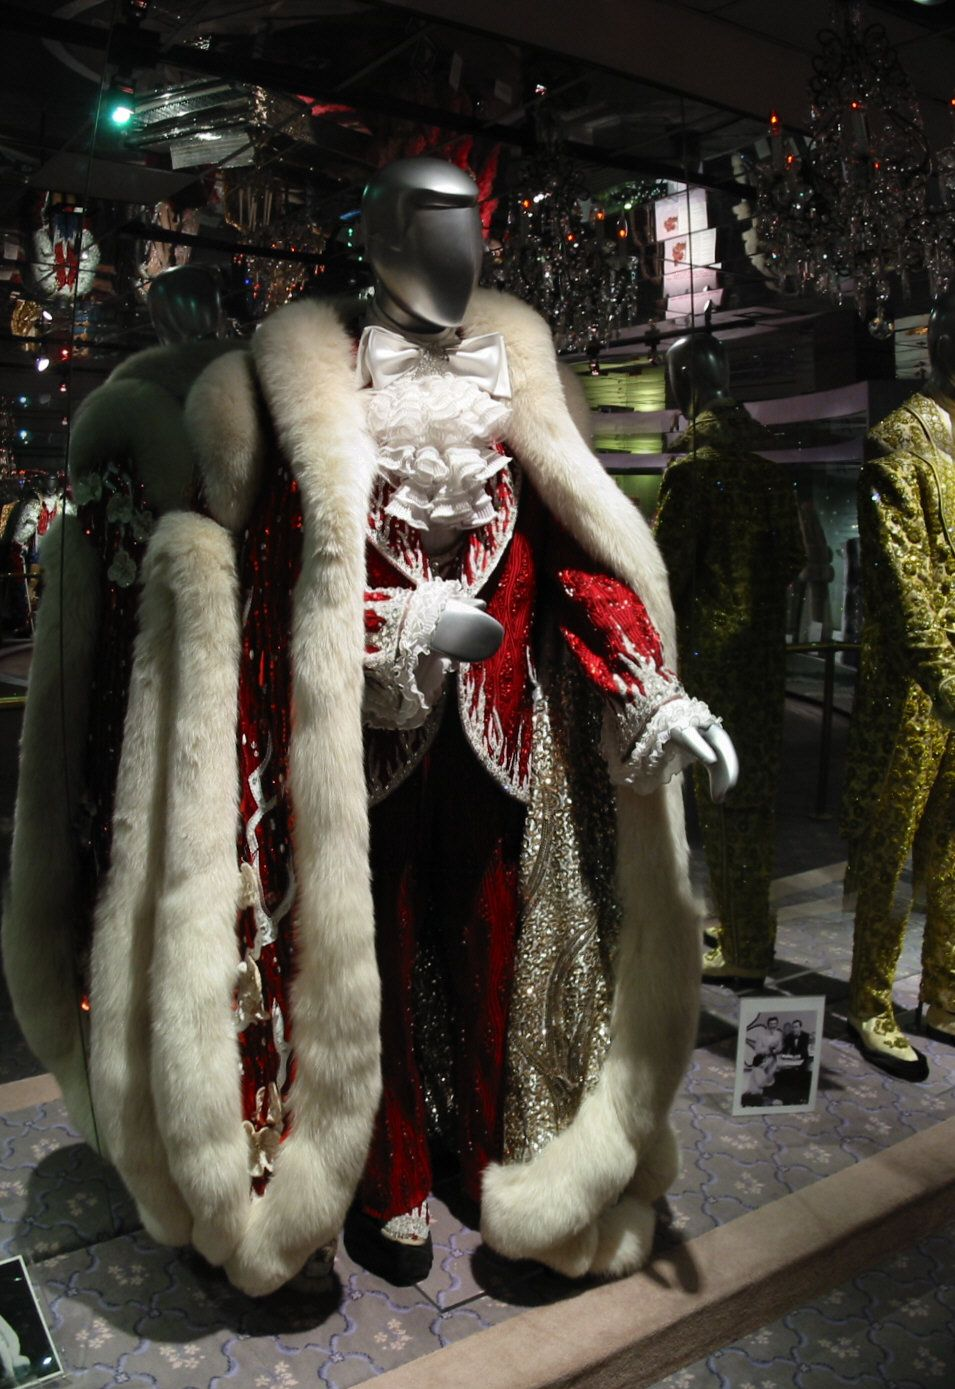 Liberaces Early 1980s Christmas Costume Worn At The Las Vegas